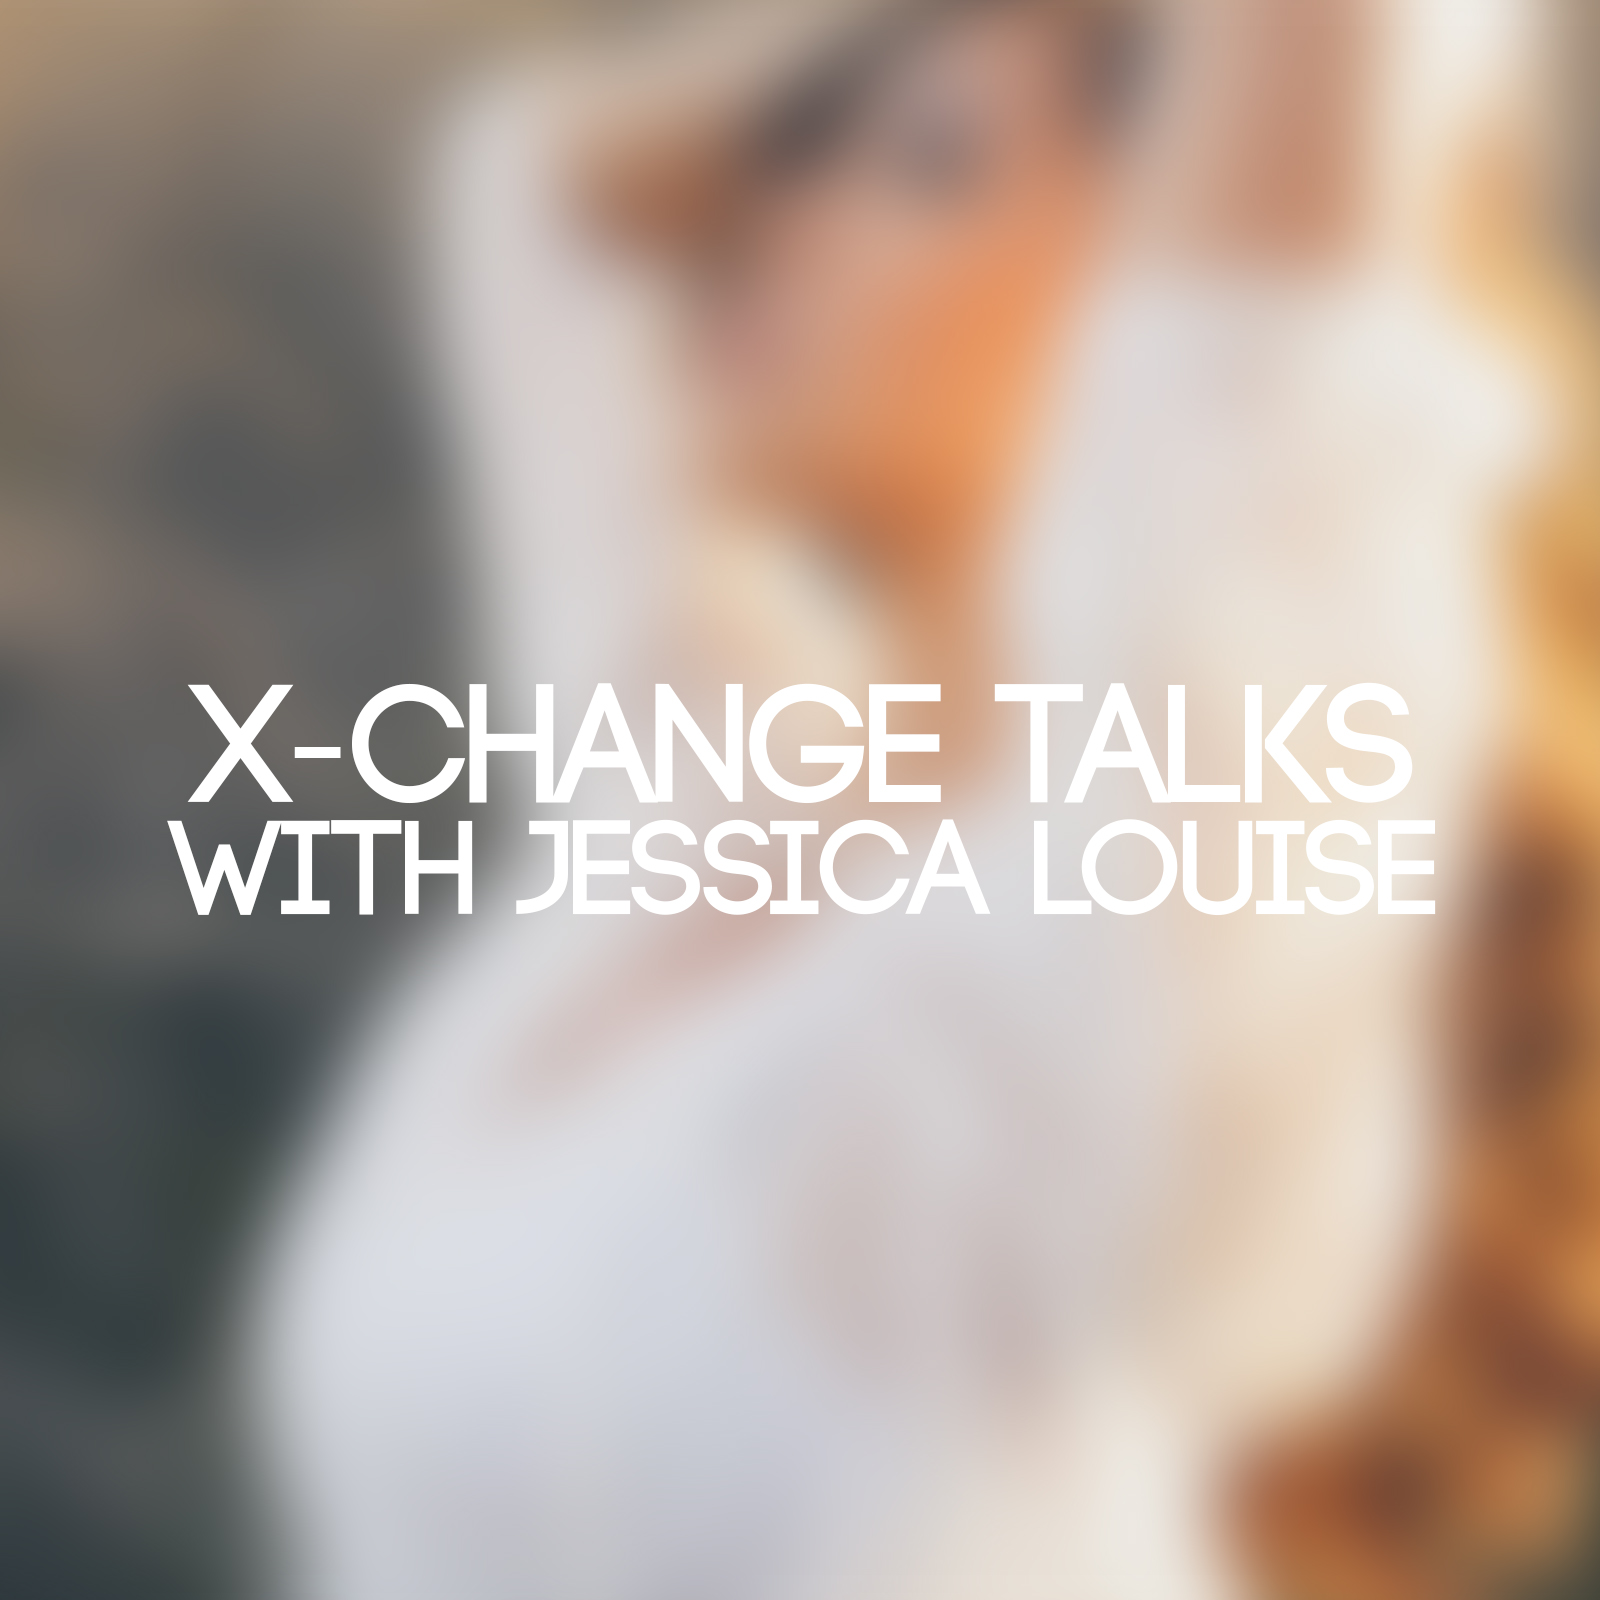 X-Change Talks with Jessica Louise